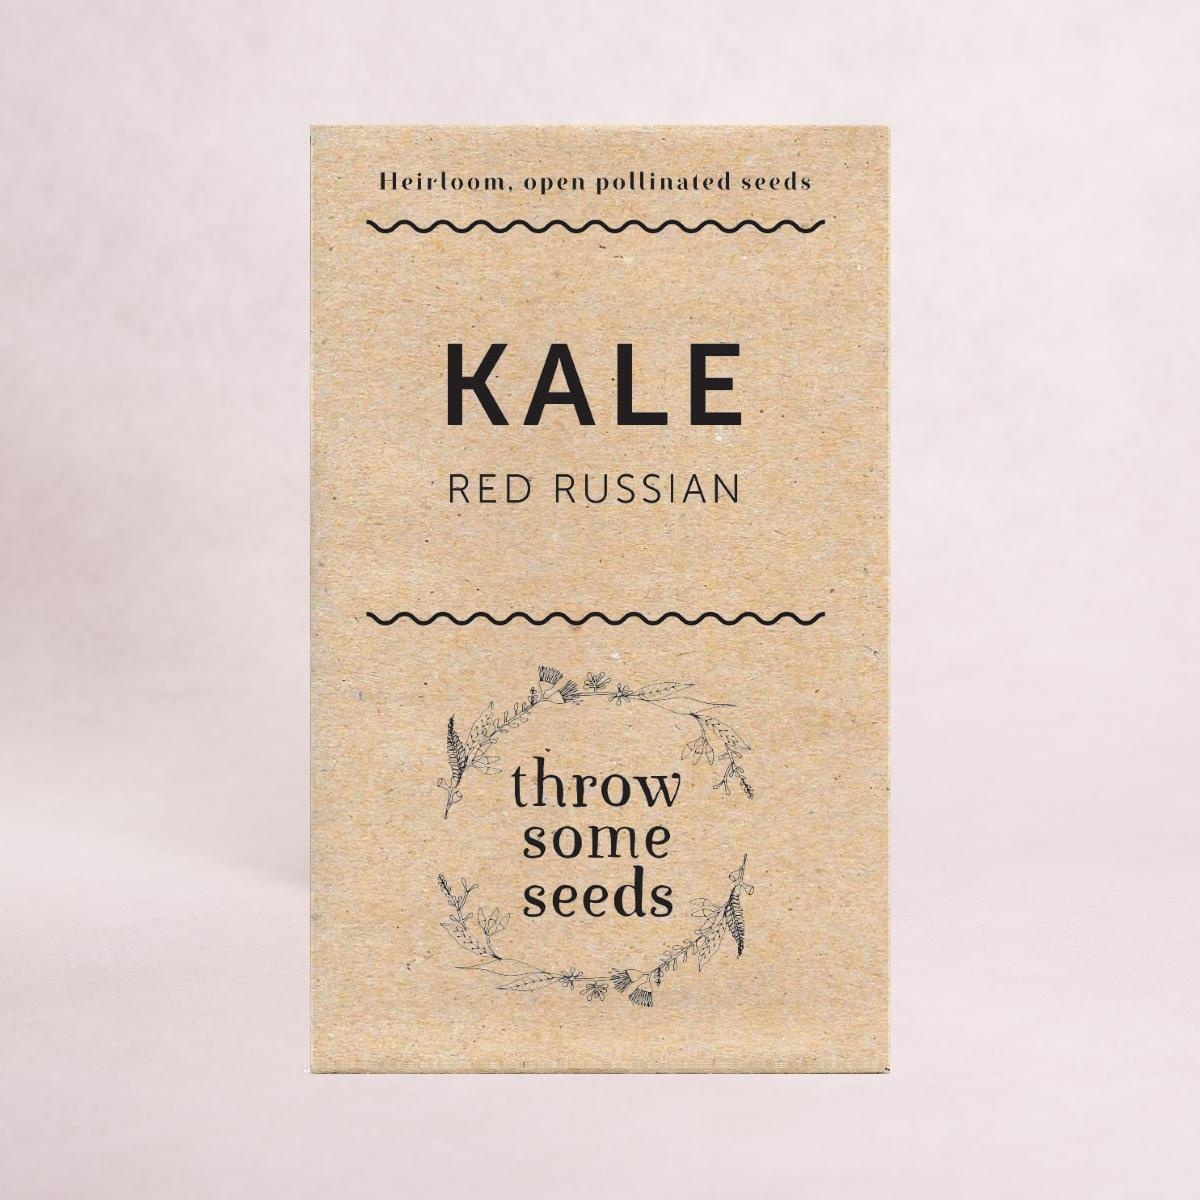 Kale (Red Russian) Seeds - Seeds - Throw Some Seeds - Australian gardening gifts and eco products online!